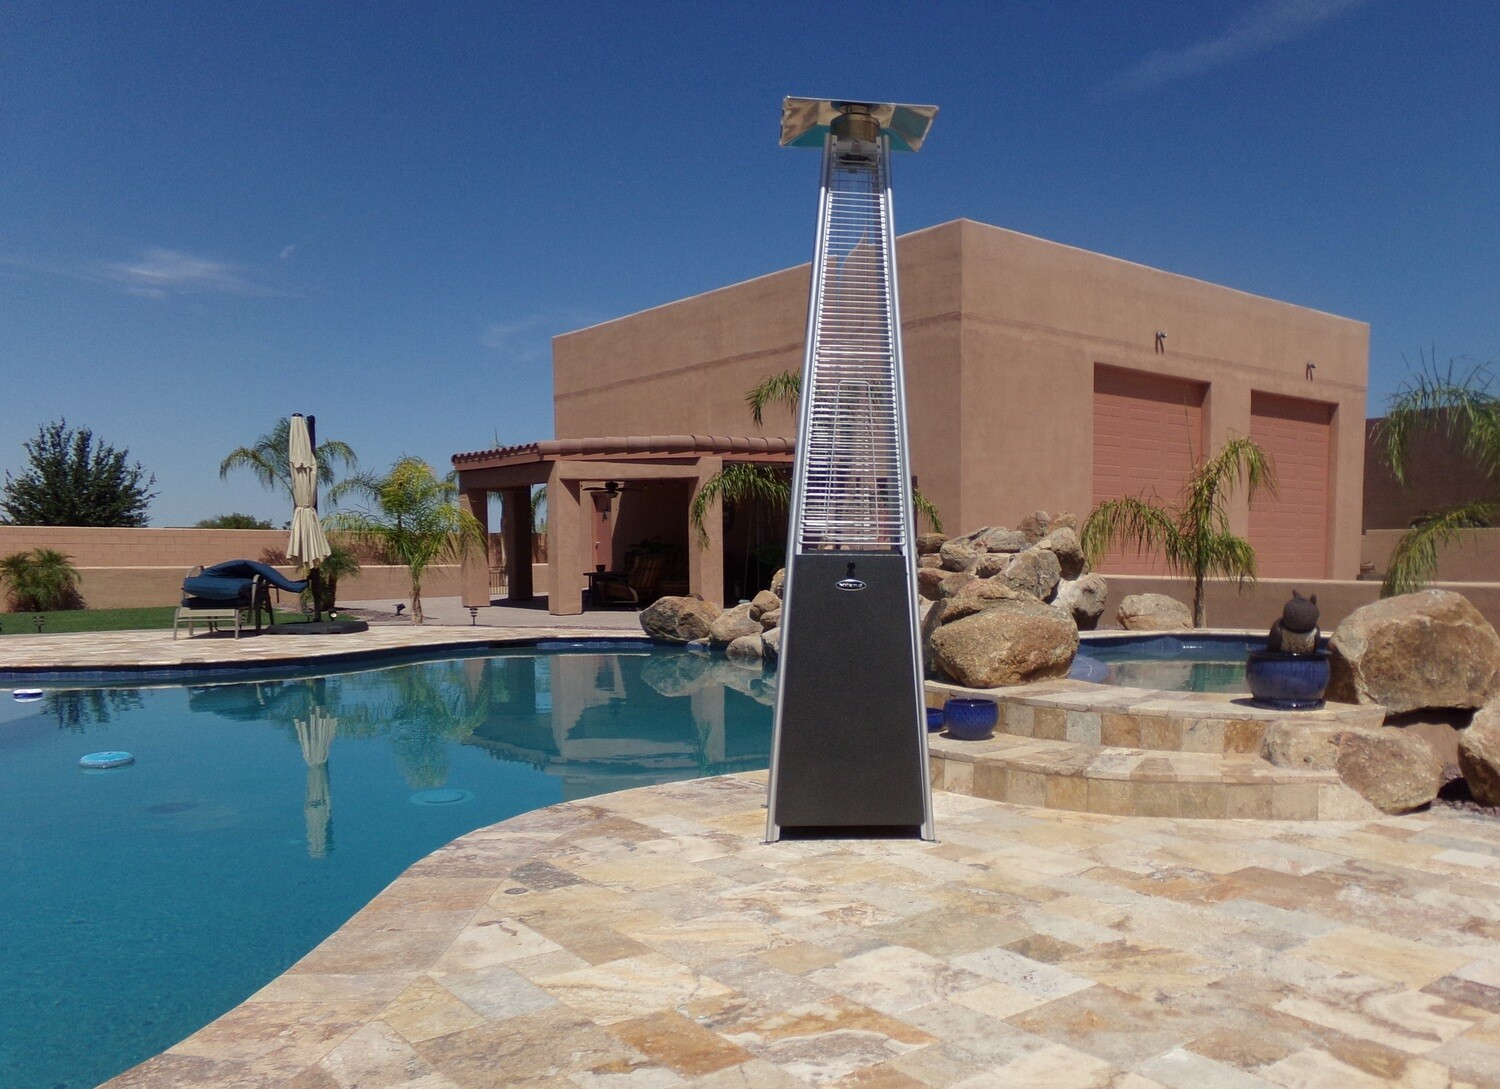 Residential Quartz Glass Tube Patio Heater   Hammered Silver